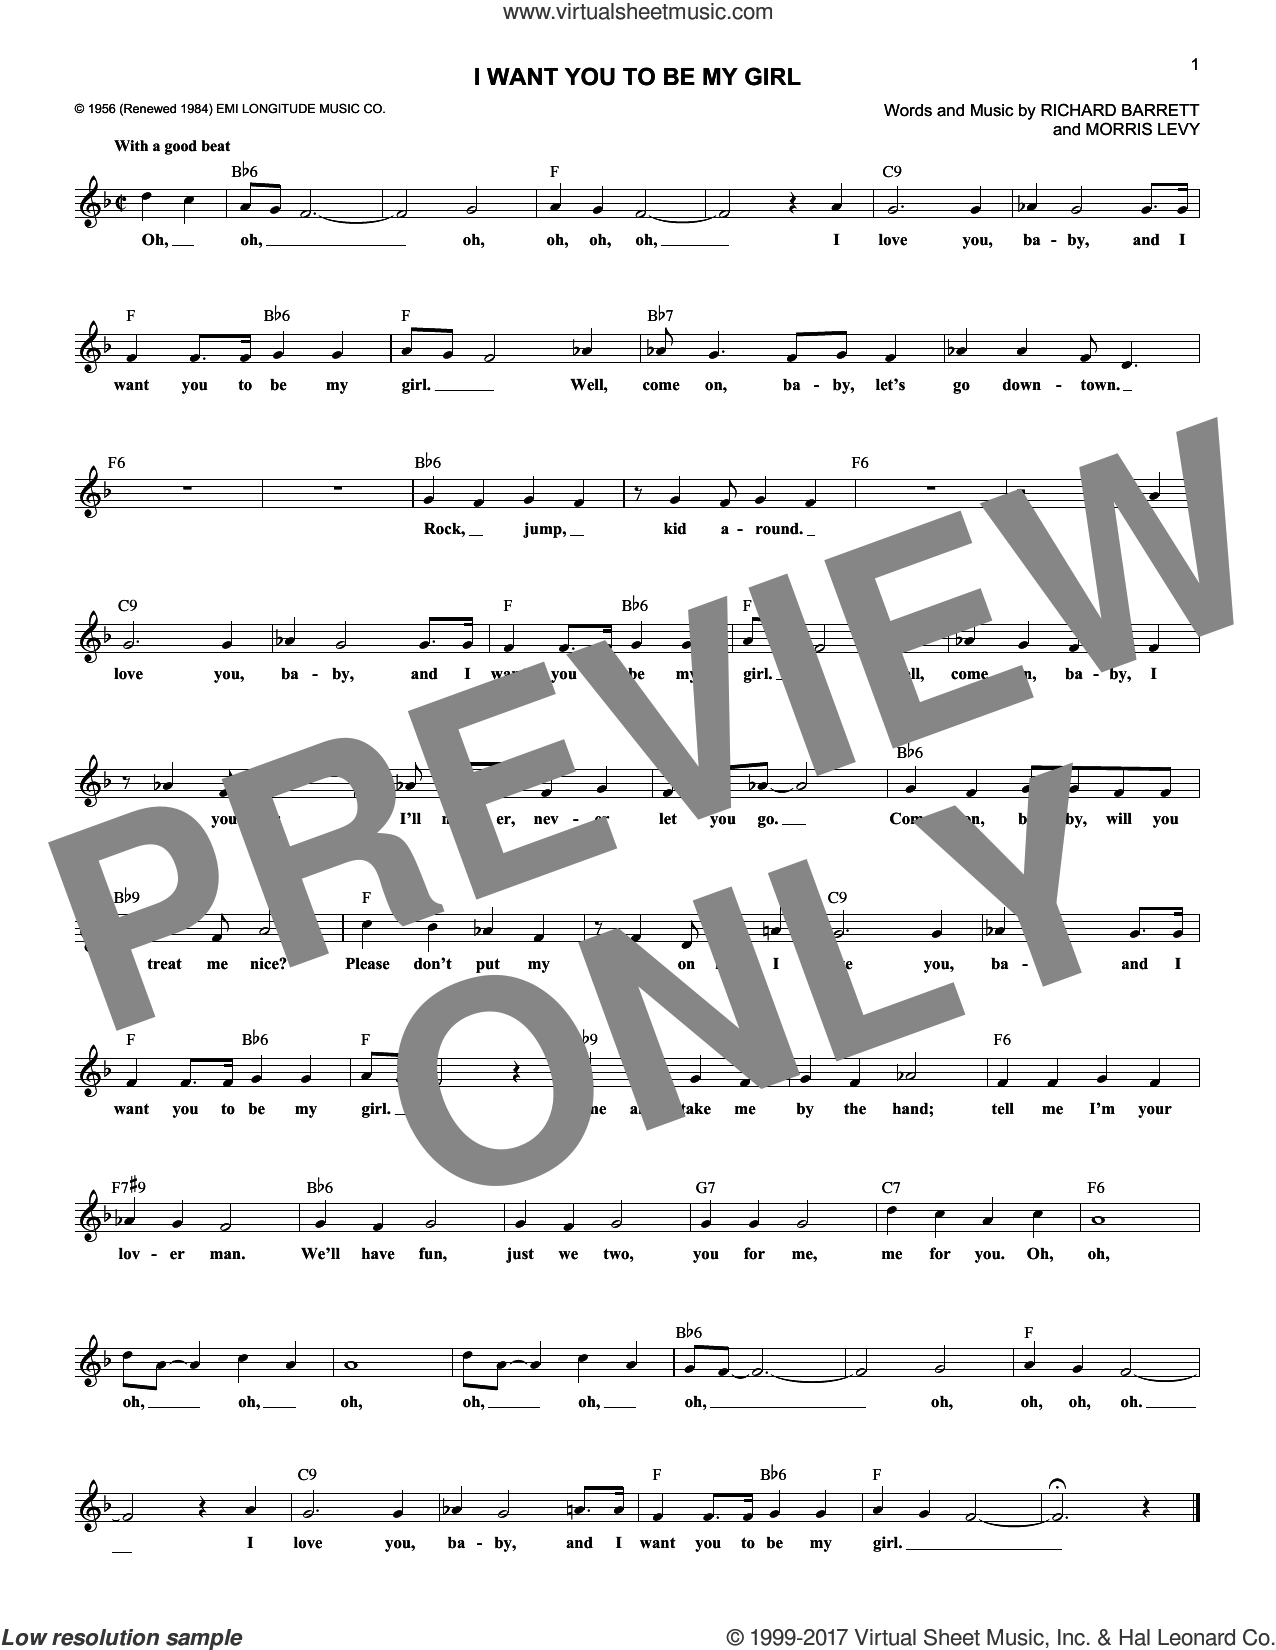 I Want You To Be My Girl sheet music for voice and other instruments (fake book) by Frankie Lymon & The Teenagers, Morris Levy and Richard Barrett, intermediate skill level